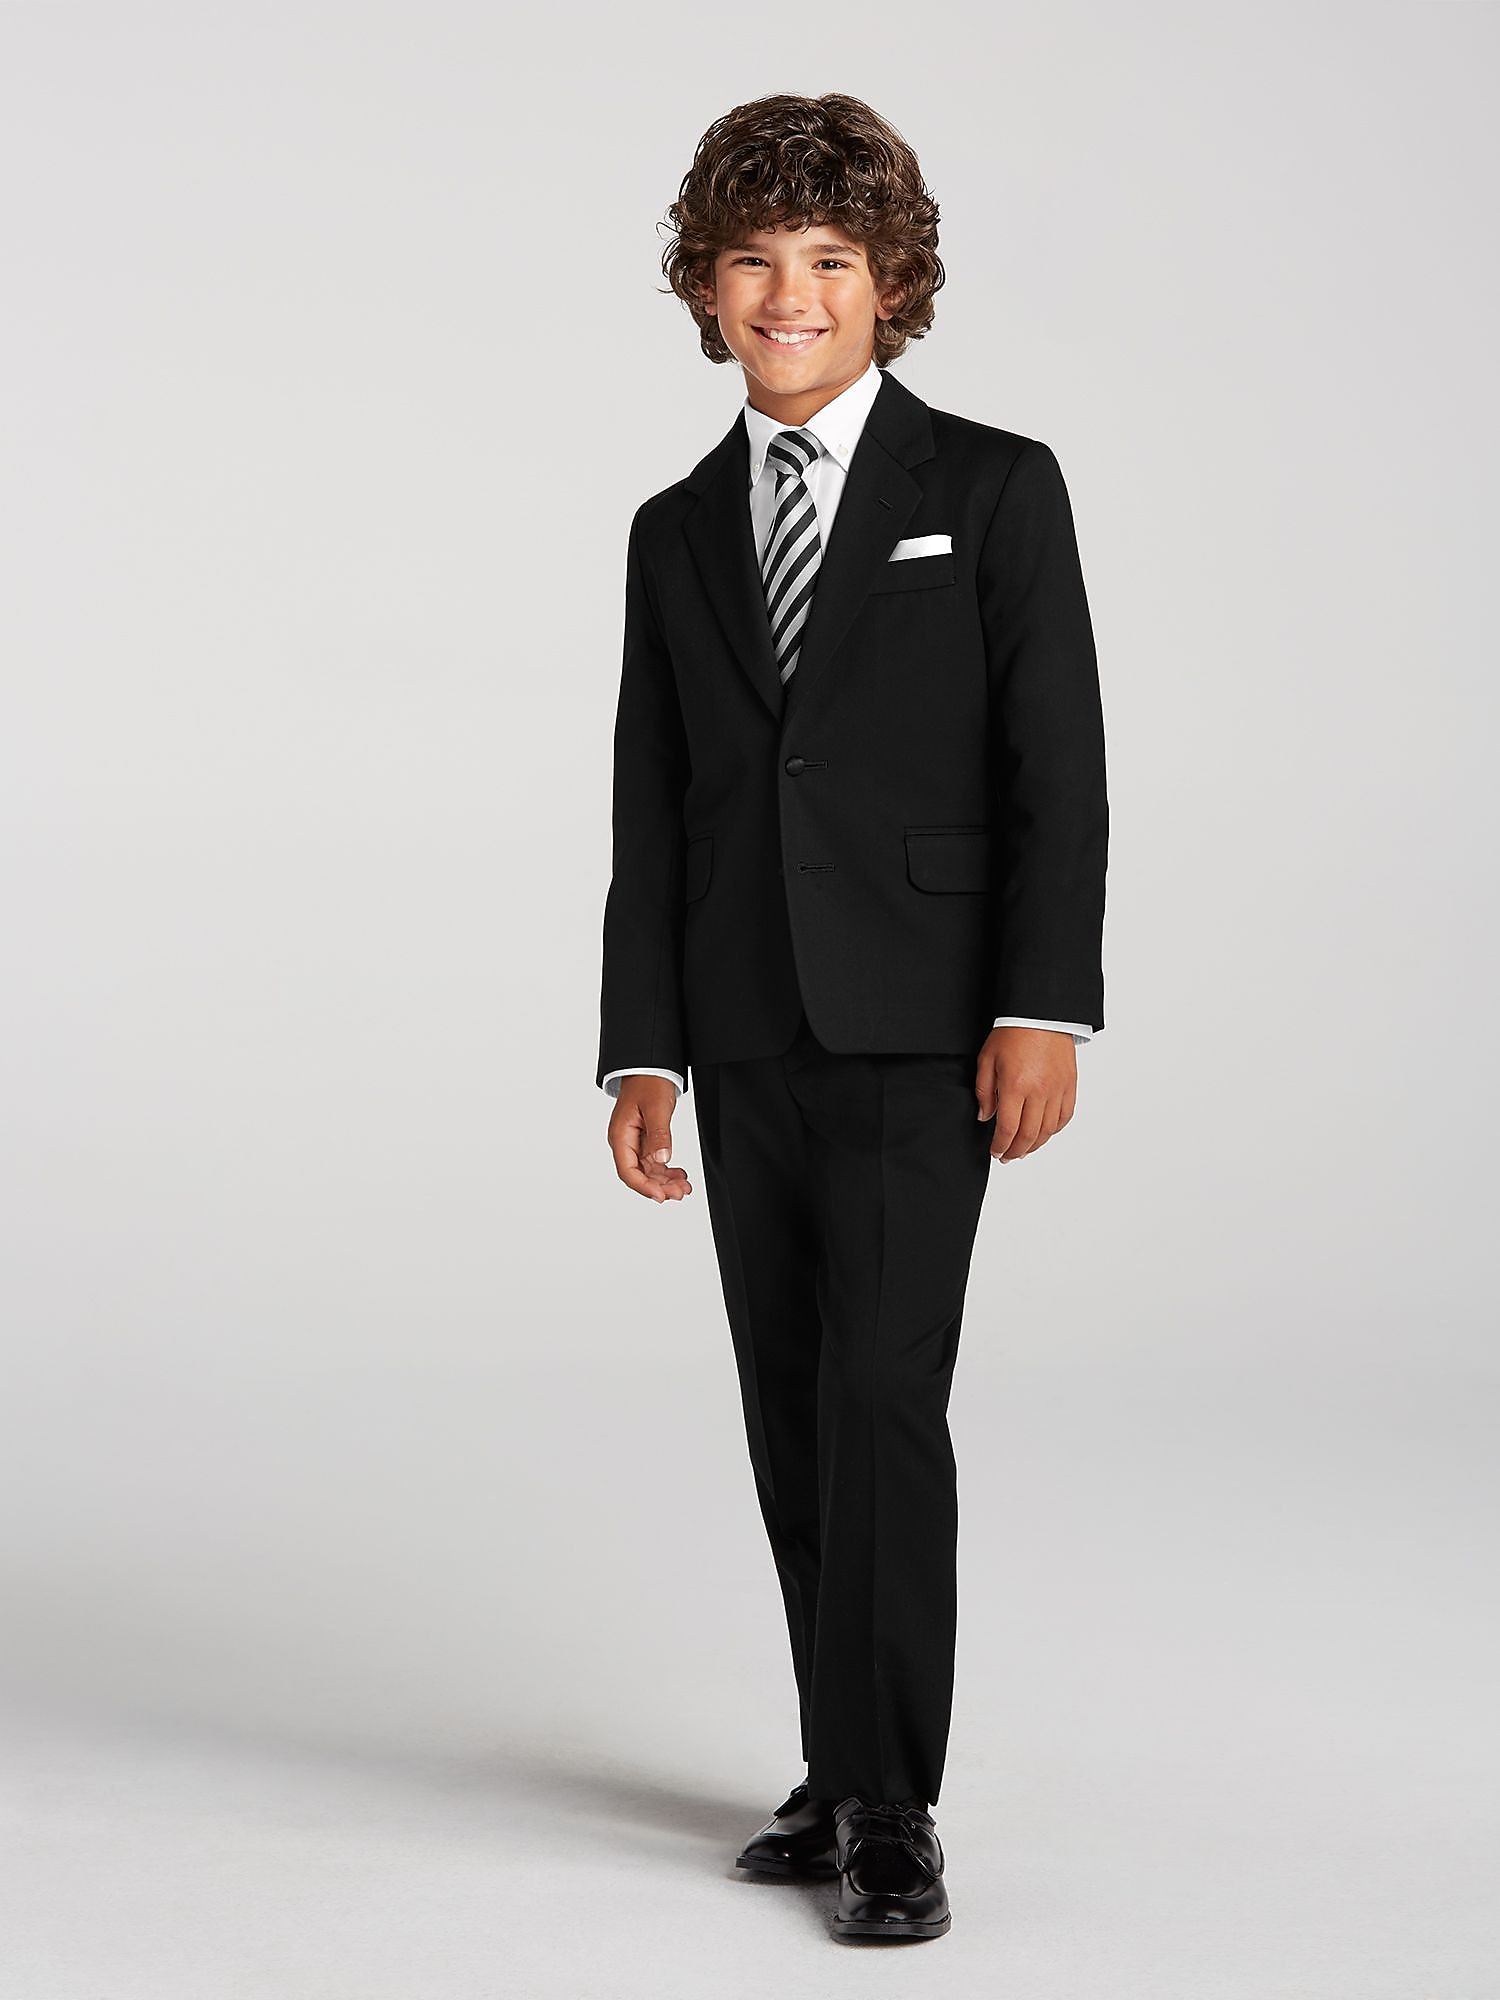 BlackNBianco includes a wide selection of boys suits and tuxedos, including different colors like White, Ivory, Brown, and Navy. Plus different styles like the traditional tuxedo with the tail, pinstripes, vest suits, and textured. We also have a beautiful selection of shirts to wear with any boys suits or tuxedos.